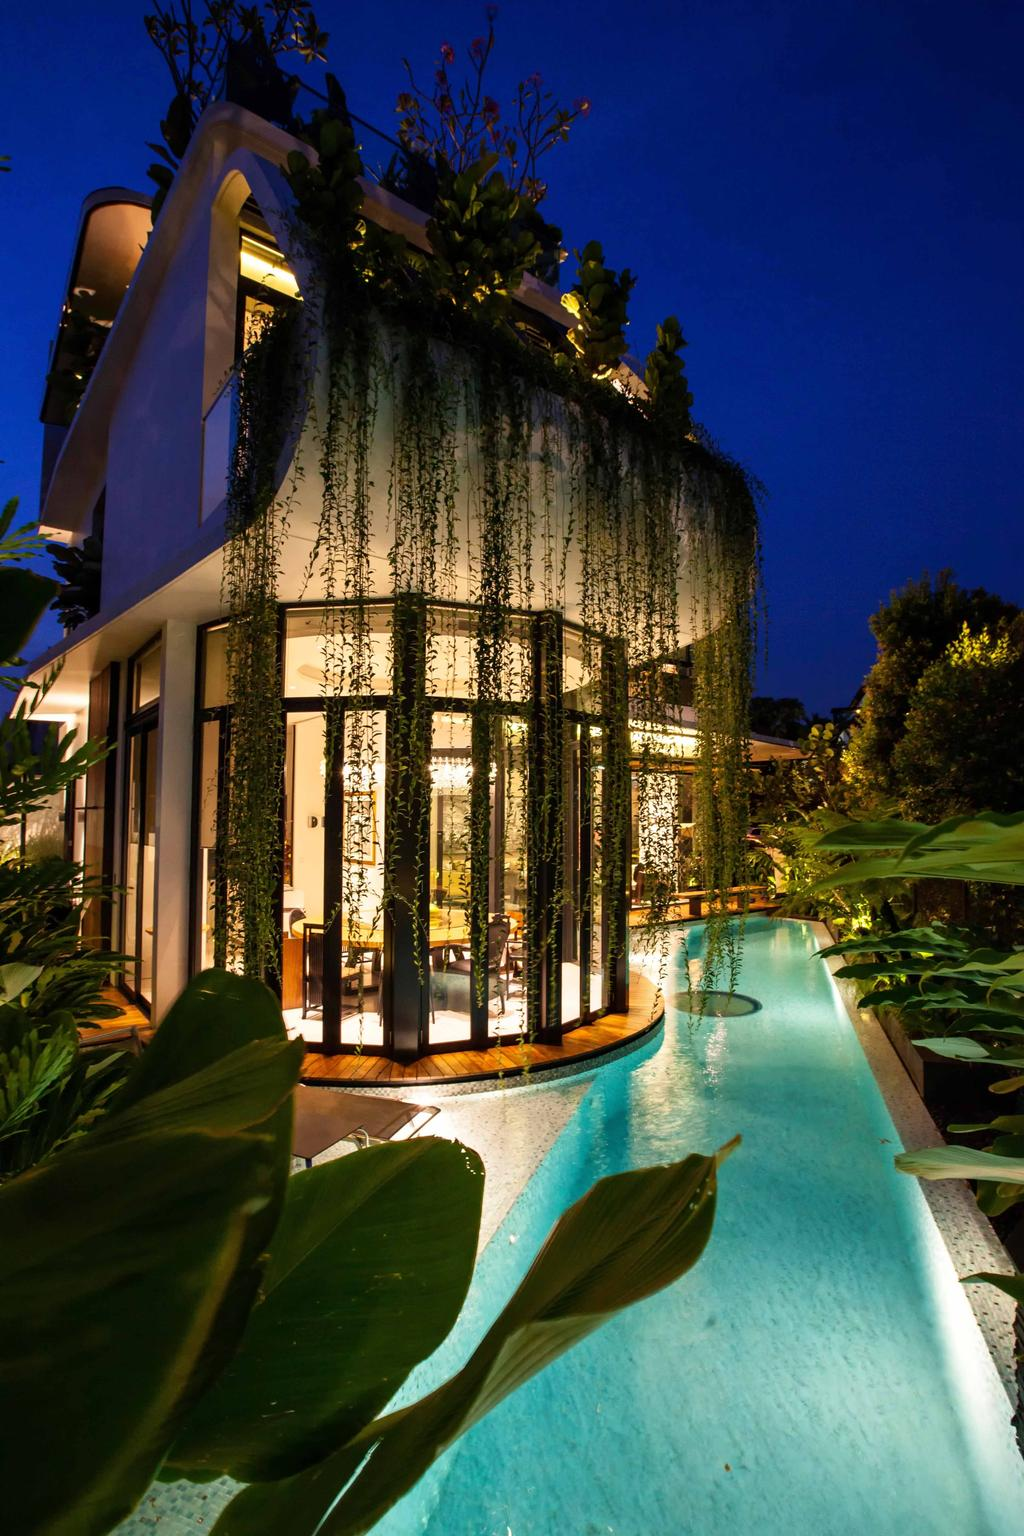 Modern, Landed, Wajek Walk, Architect, Aamer Architects, Swimming Pool, Pool, Bungalow, Full Length Window, Glass Windows, Hanging Plant, Indoor Pool, Private Pool, House Pool, Plants, Greenery Deco, Flora, Jar, Plant, Potted Plant, Pottery, Vase, Water